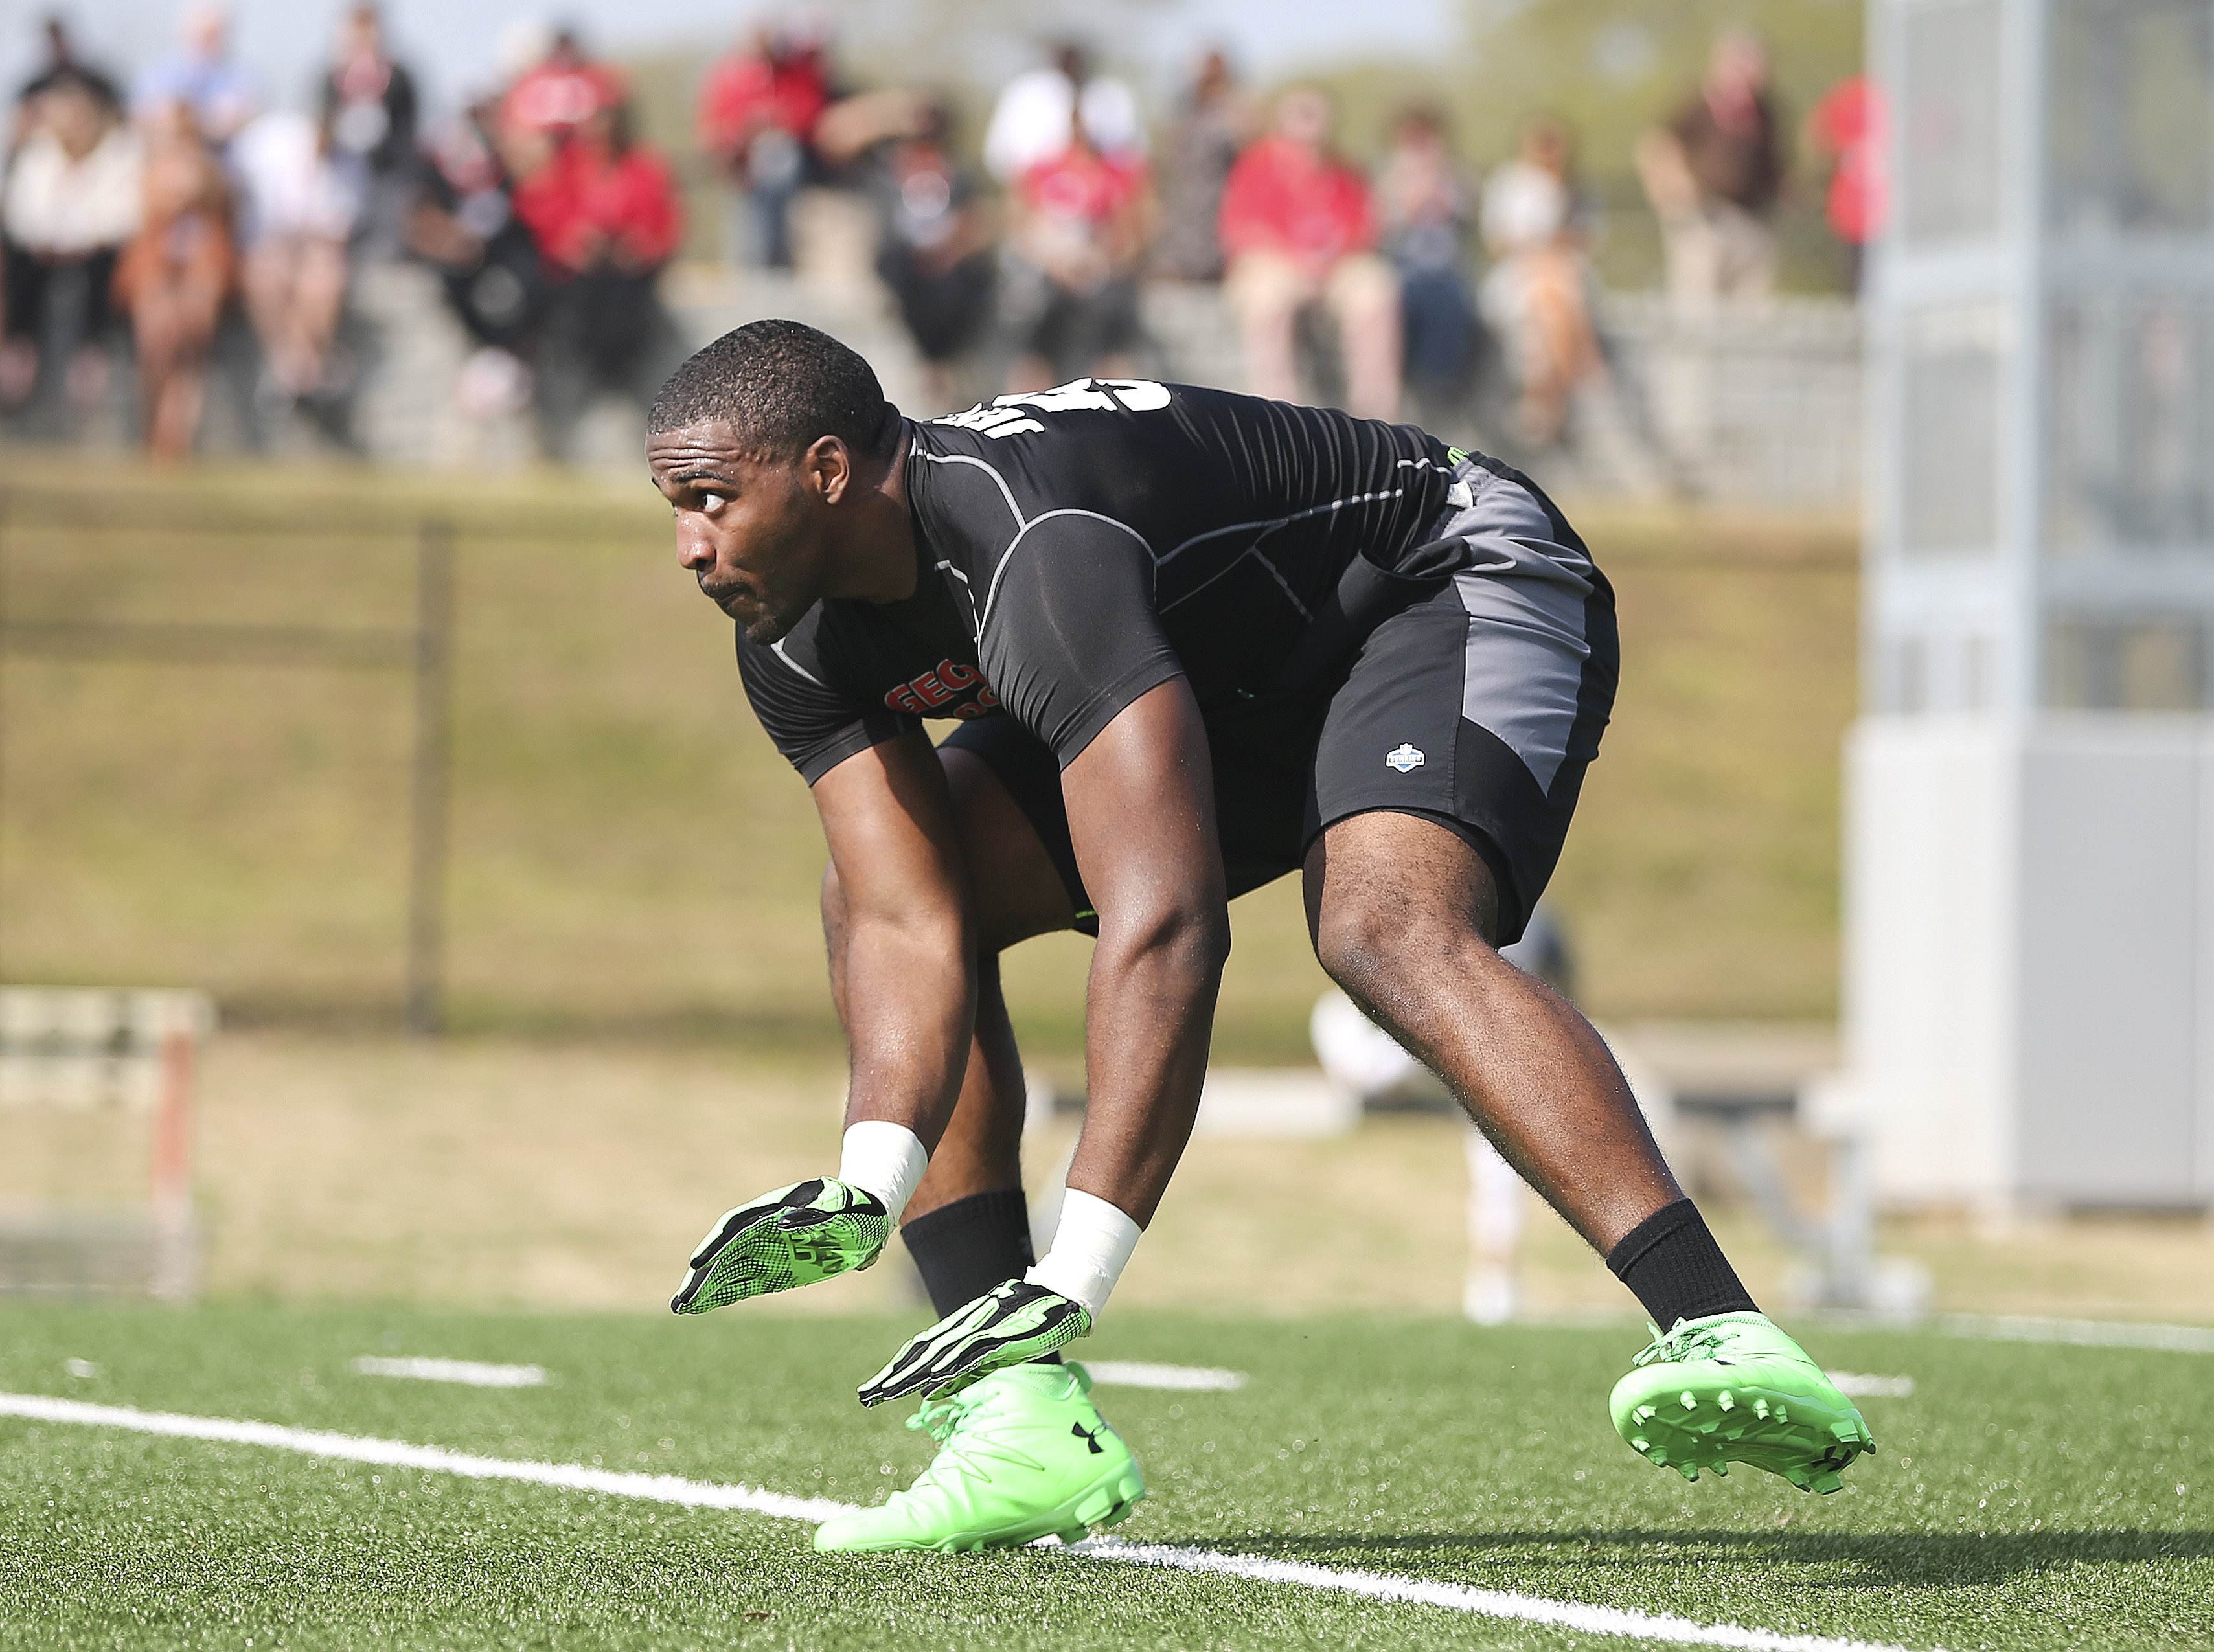 Linebacker Jordan Jenkins works during a drill in front of NFL football scouts during Georgia's Pro Day, Wednesday, March 16, 2016, in Athens, Ga. (John Bazemore/Associated Press)